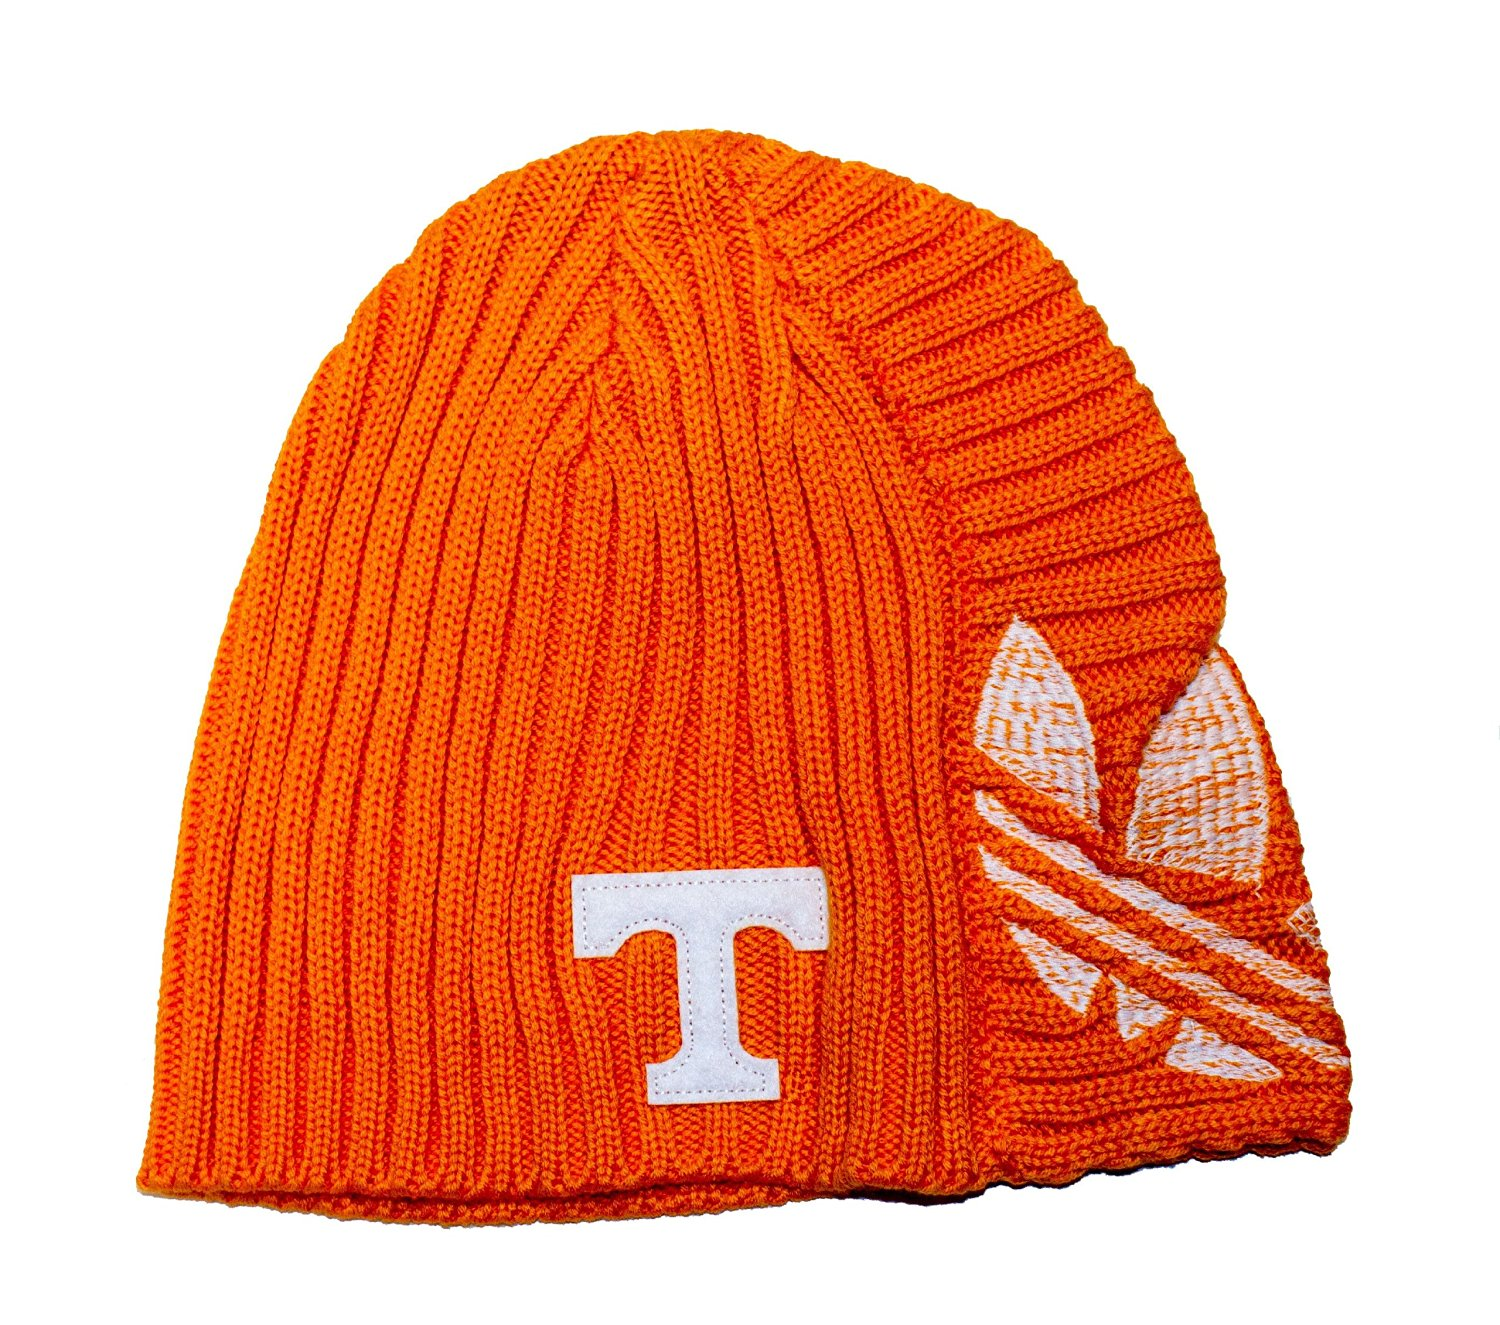 f1c06bb9d3f NCAA Licensed Tennessee Volunteers Orange Embroidered Knit Beanie Hat Cap  Lid